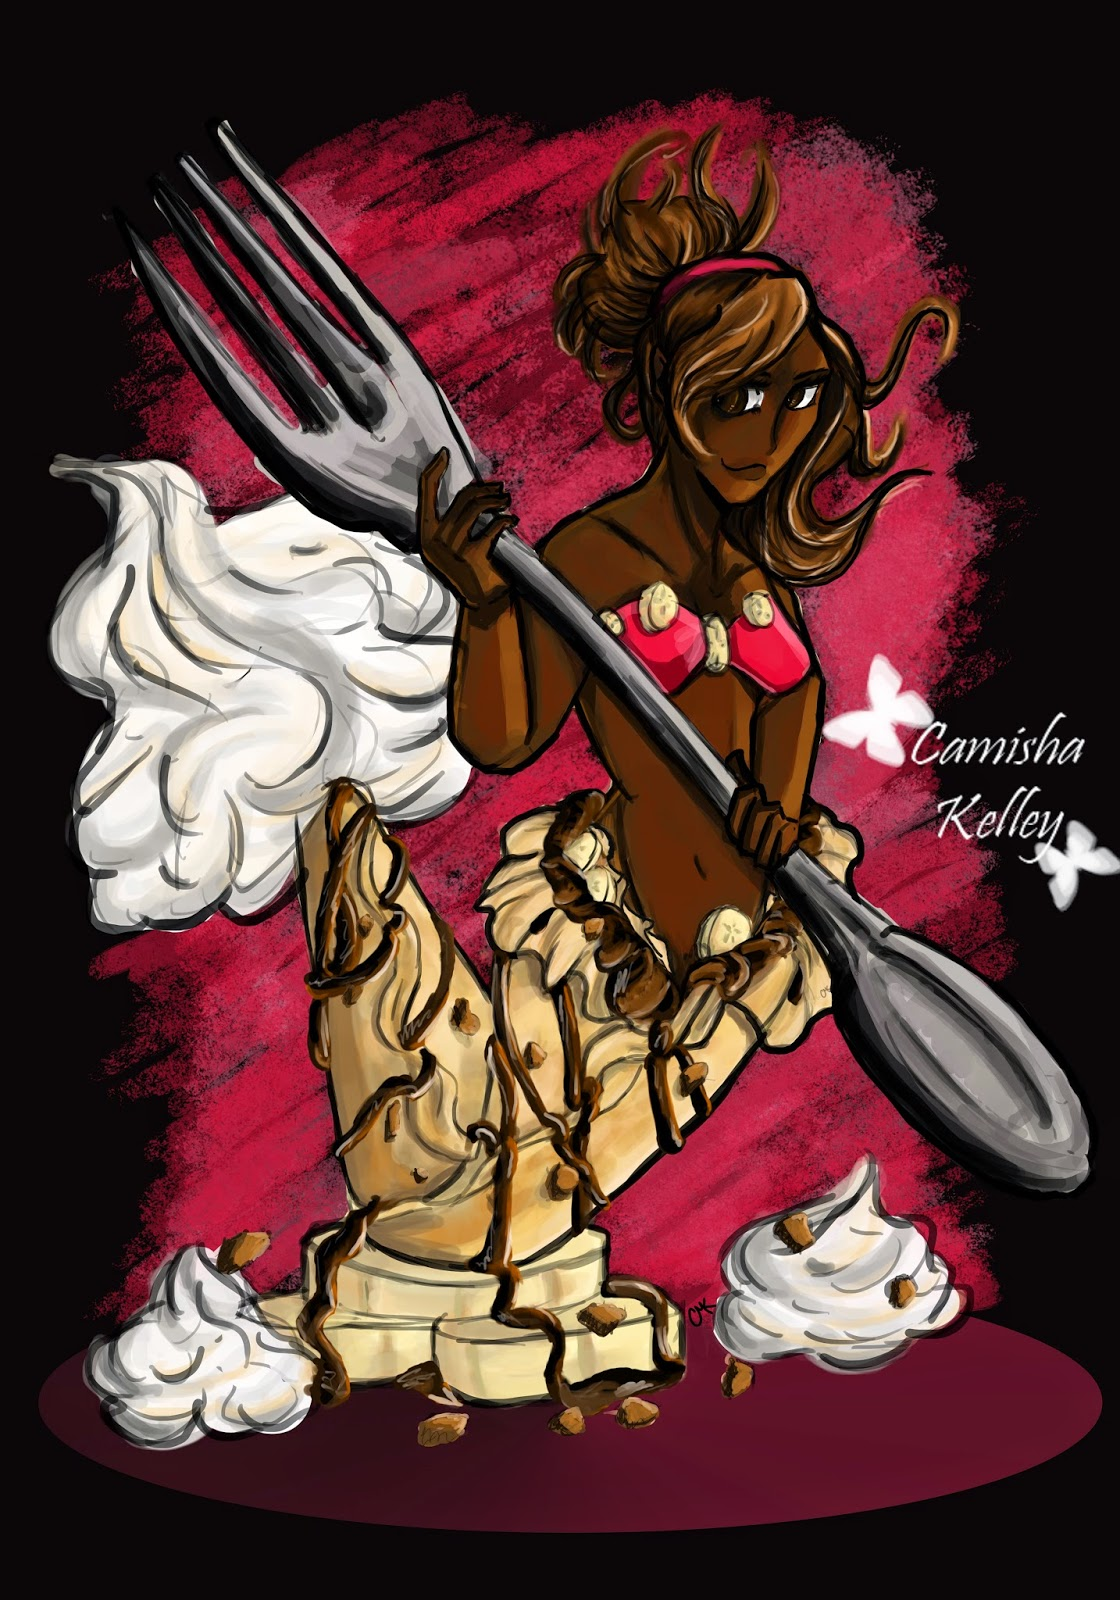 nutella and bananas crepe inspired pin up illustration